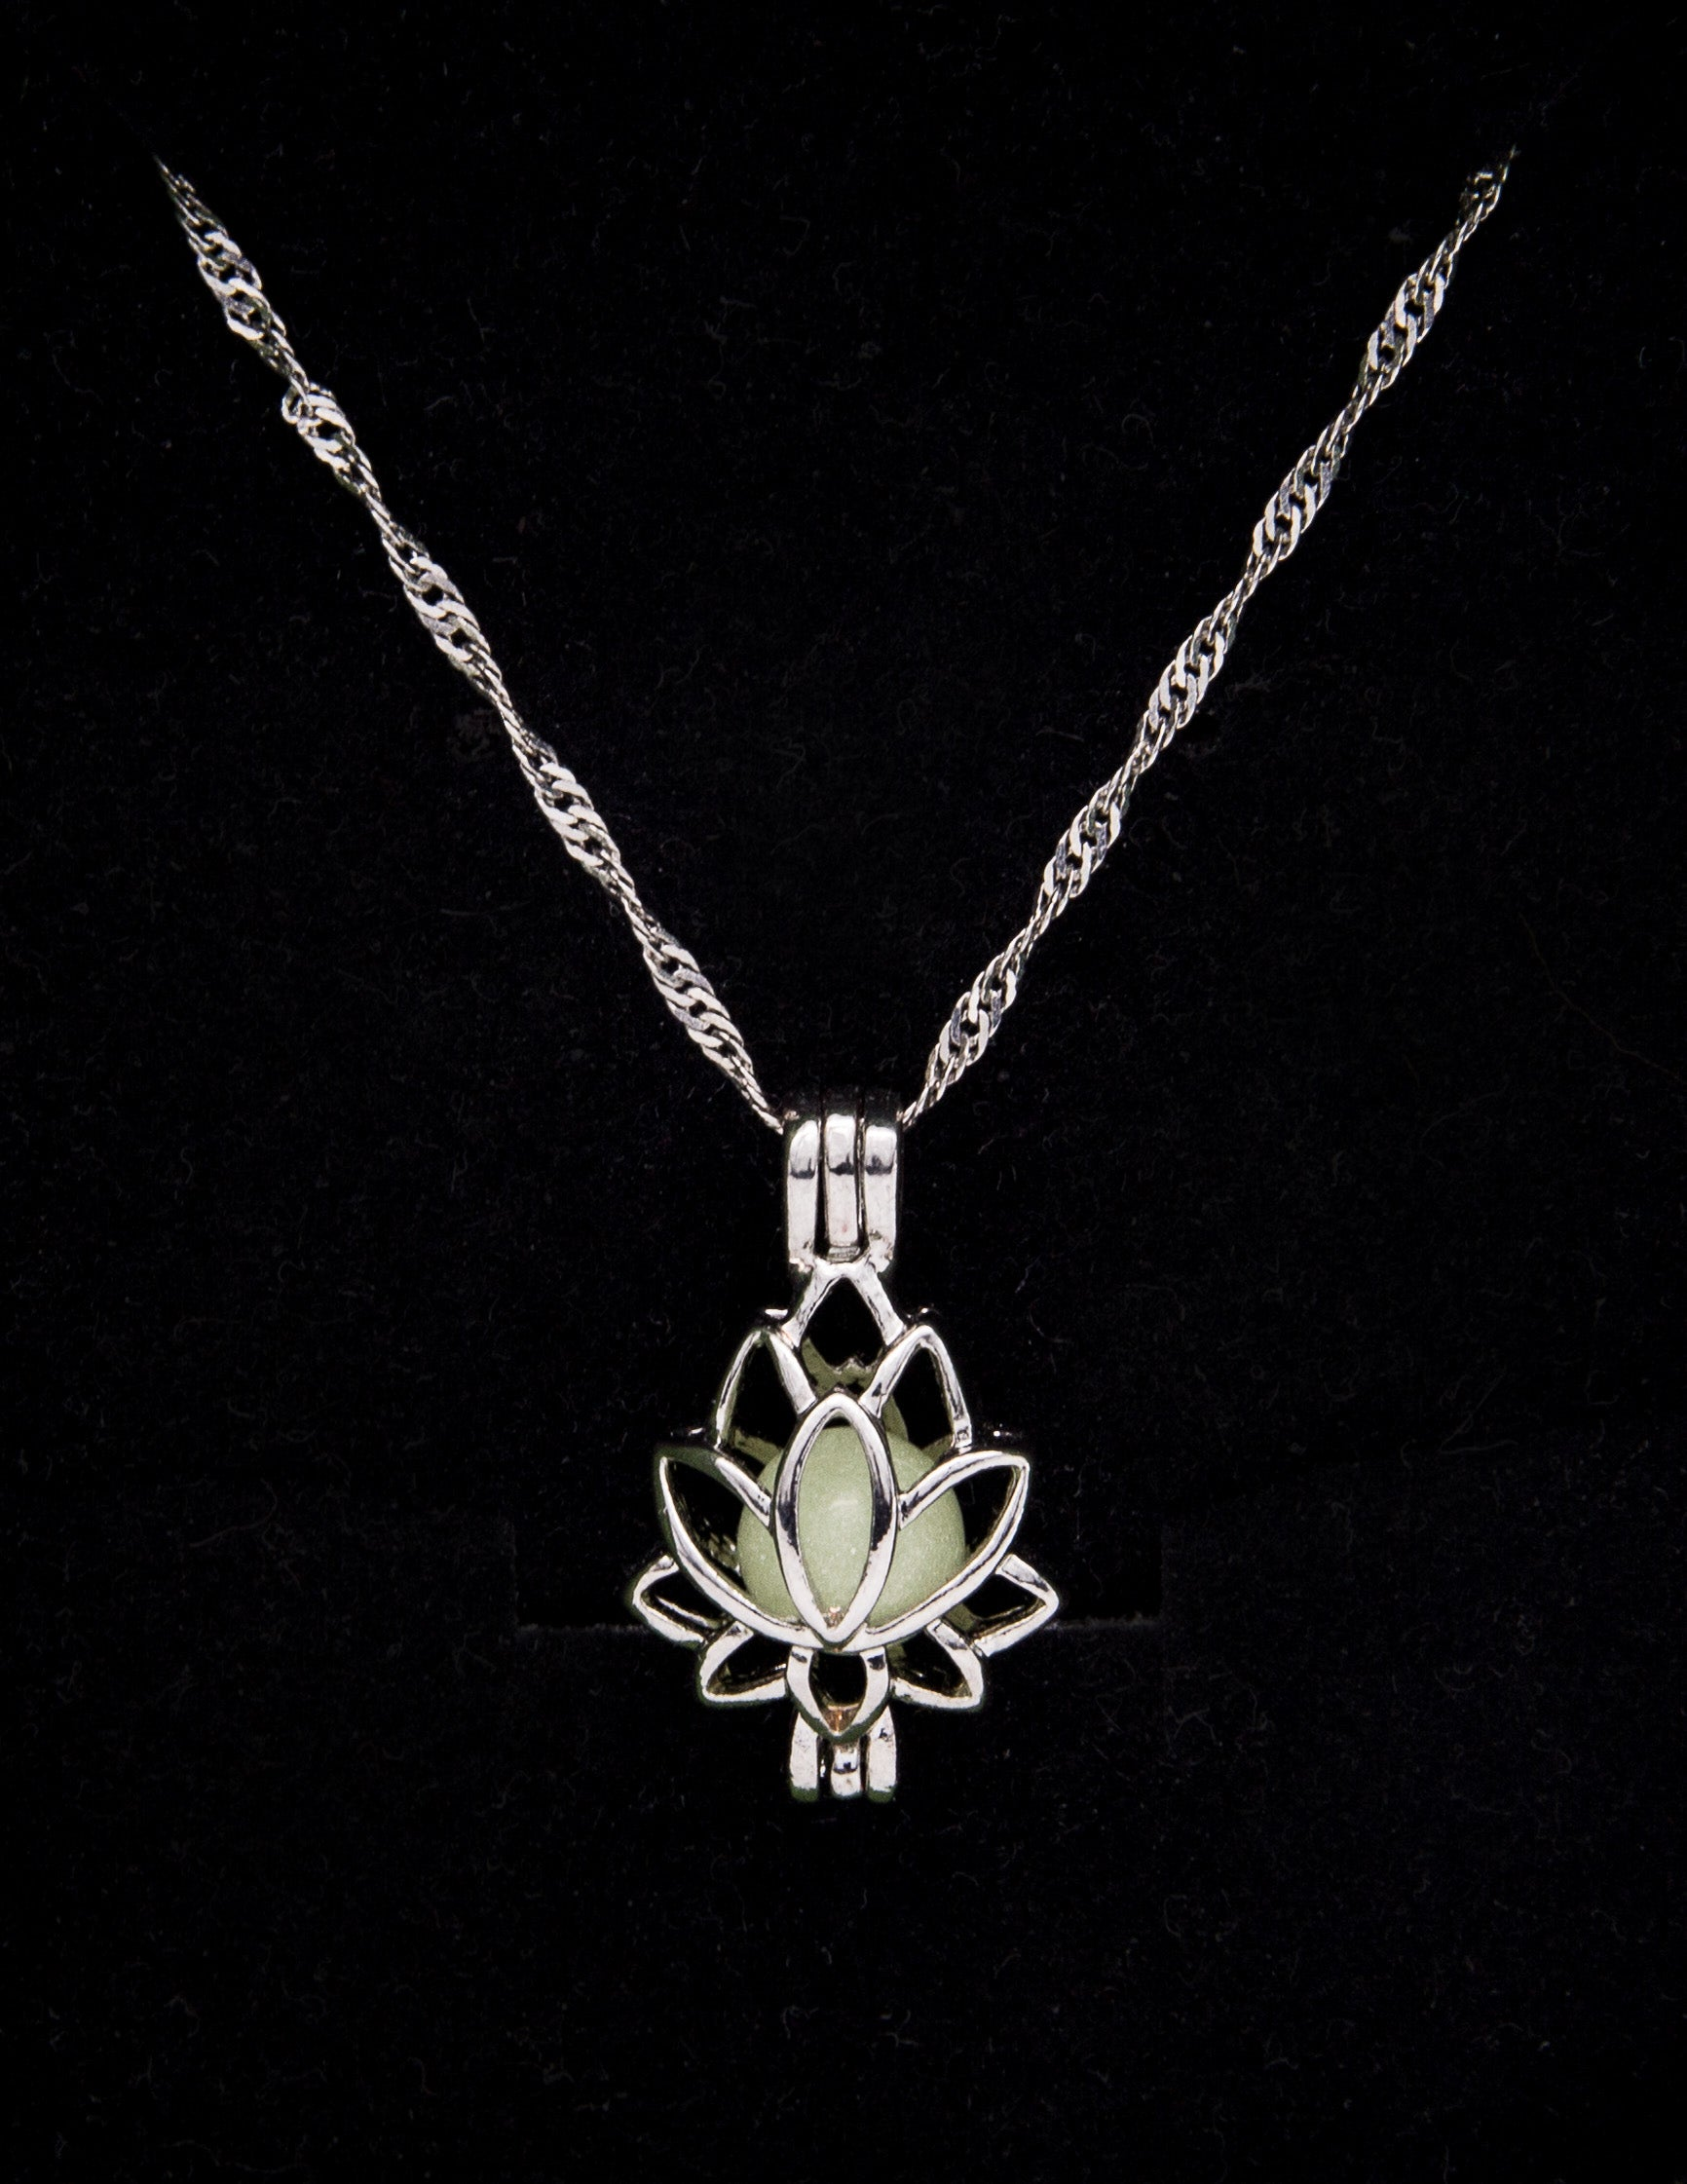 Lotus Necklace with Radiating Gemstone